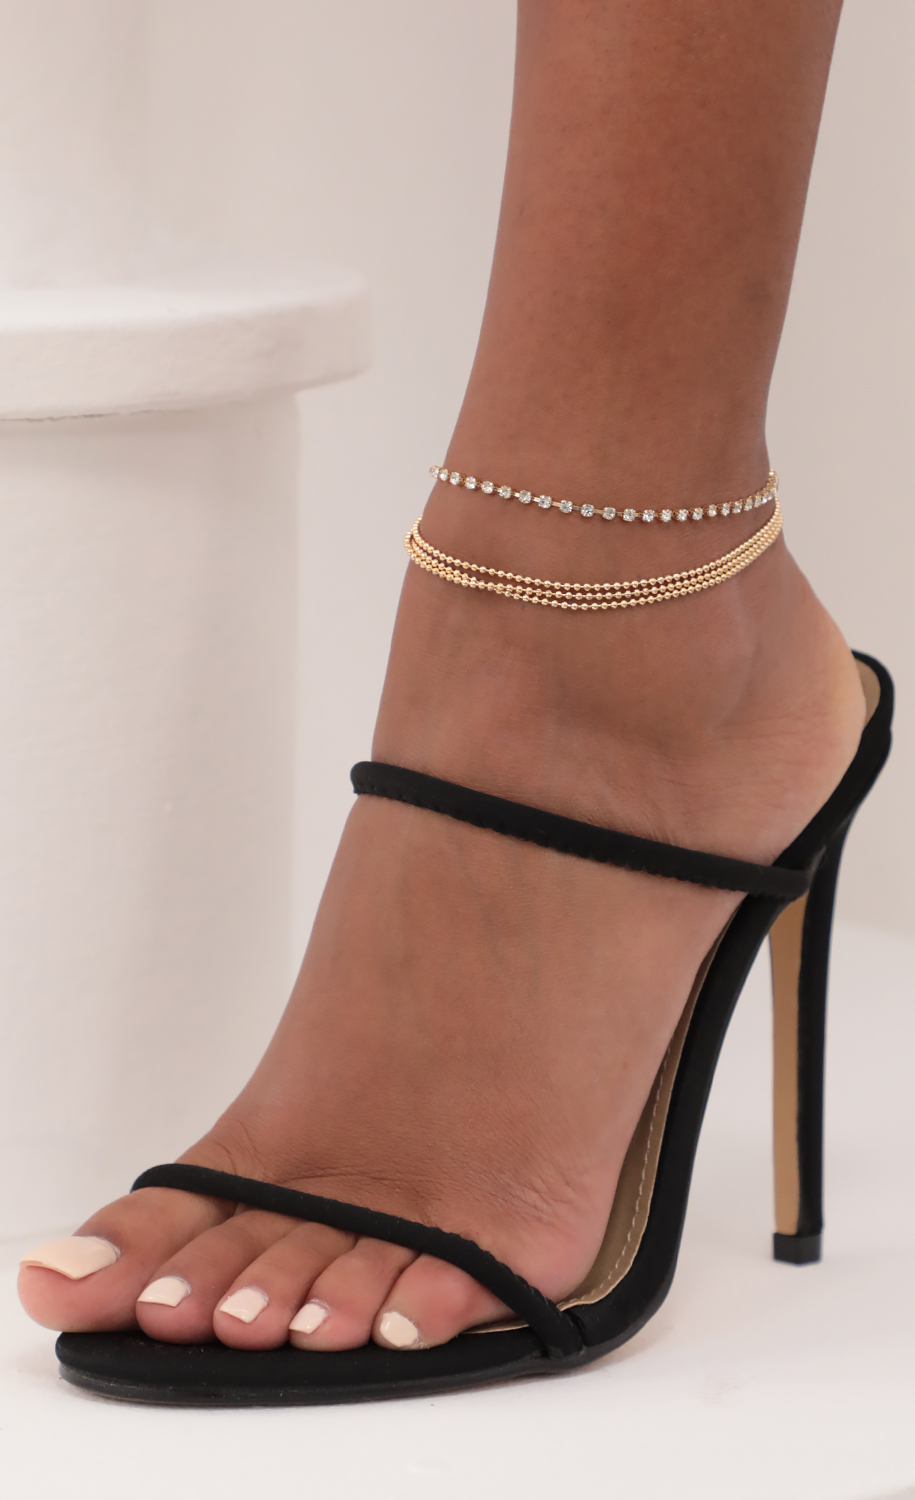 Beads and Crystals Anklet in Gold